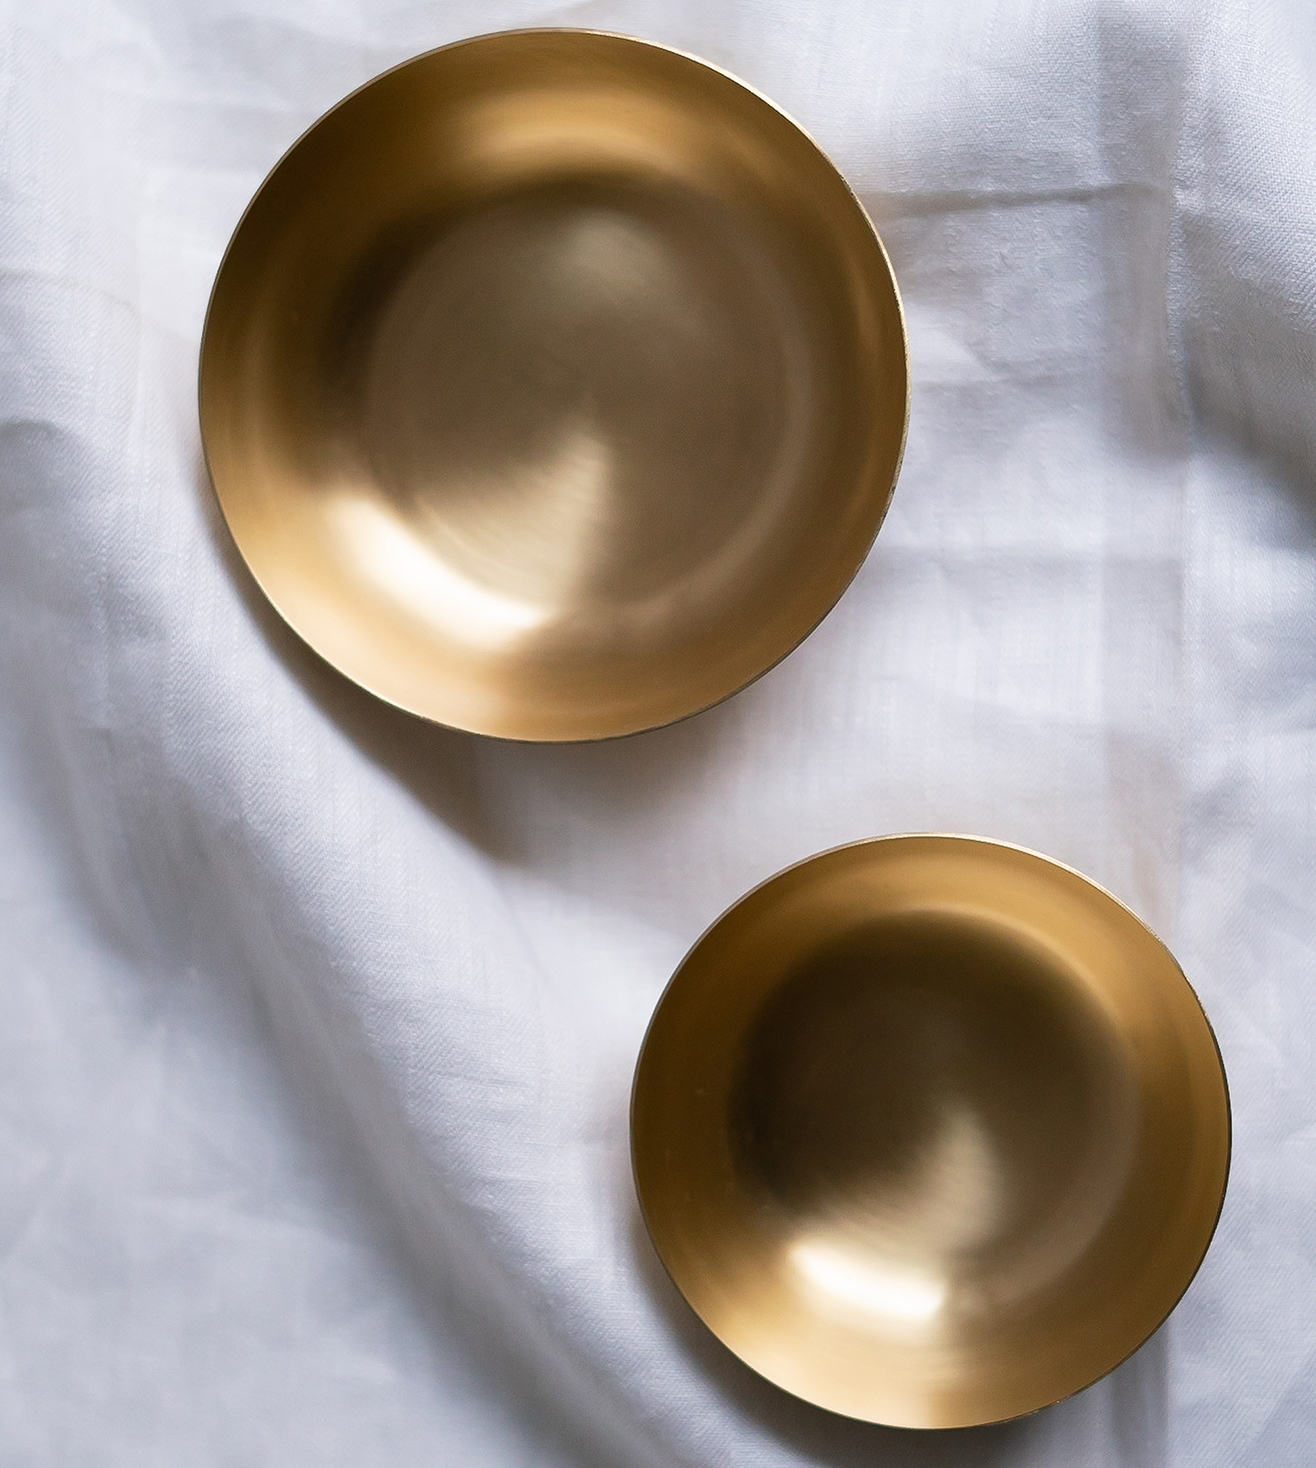 Our heirloom collection is a modern take on traditional materials. Made with pure brass, our bowls are good for serving dals, curries, desserts and all kinds of festive goodies.